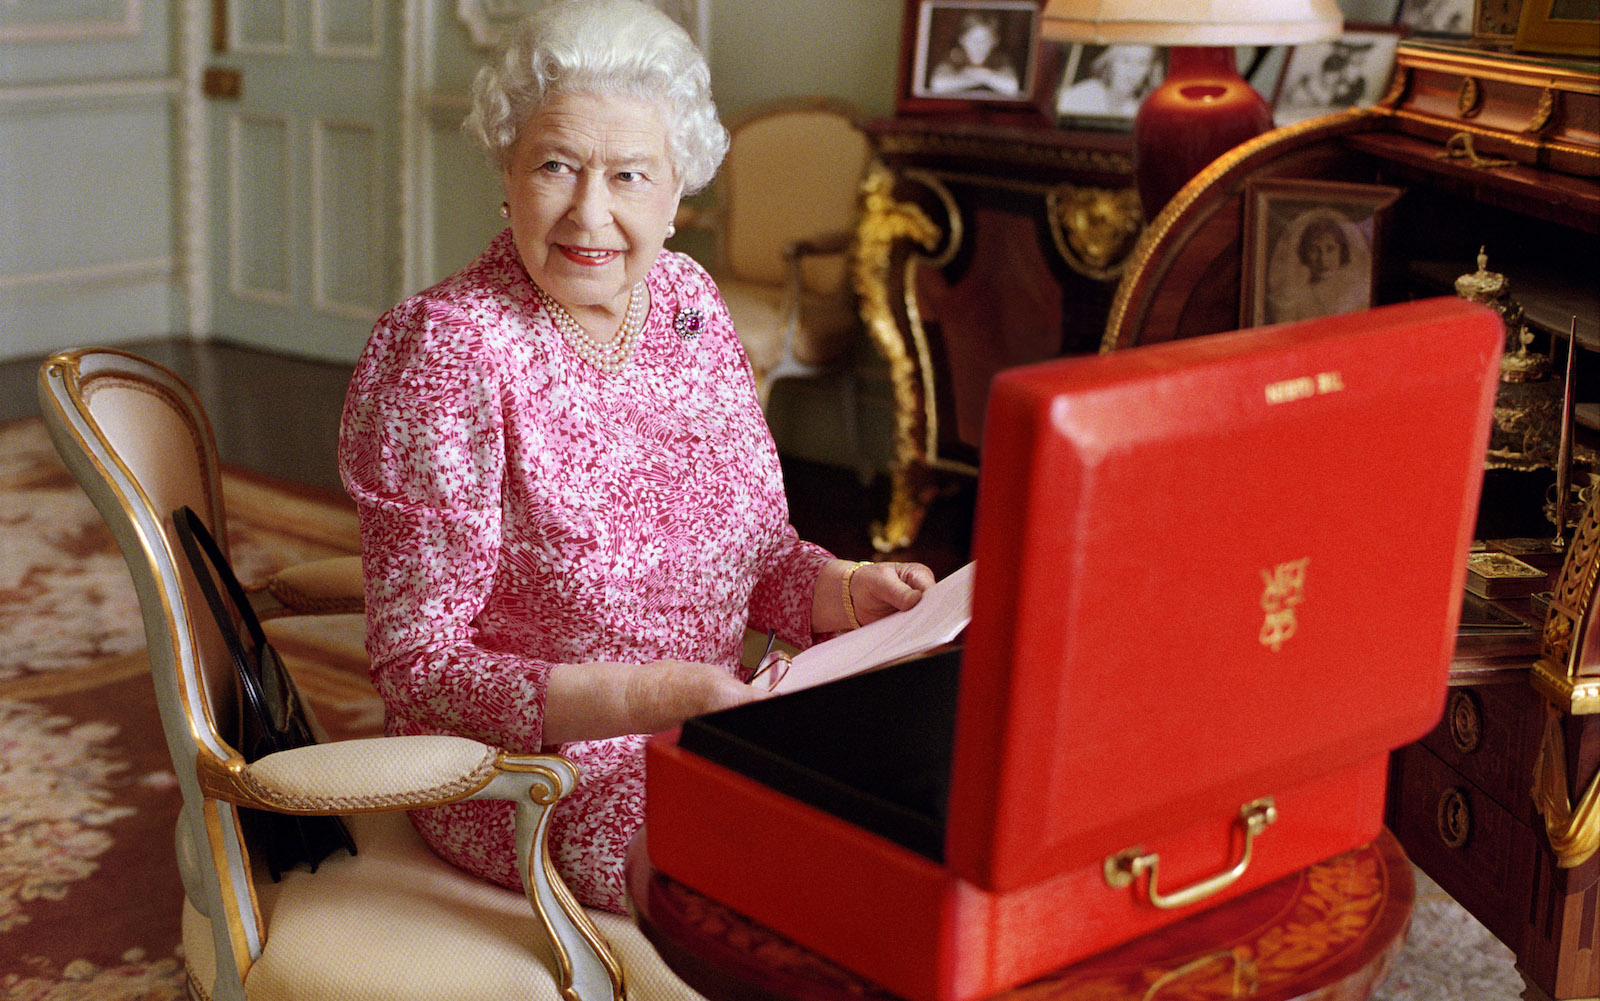 Her Majesty Queen Elizabeth II photographed by Mary McCartney at Buckingham Palace